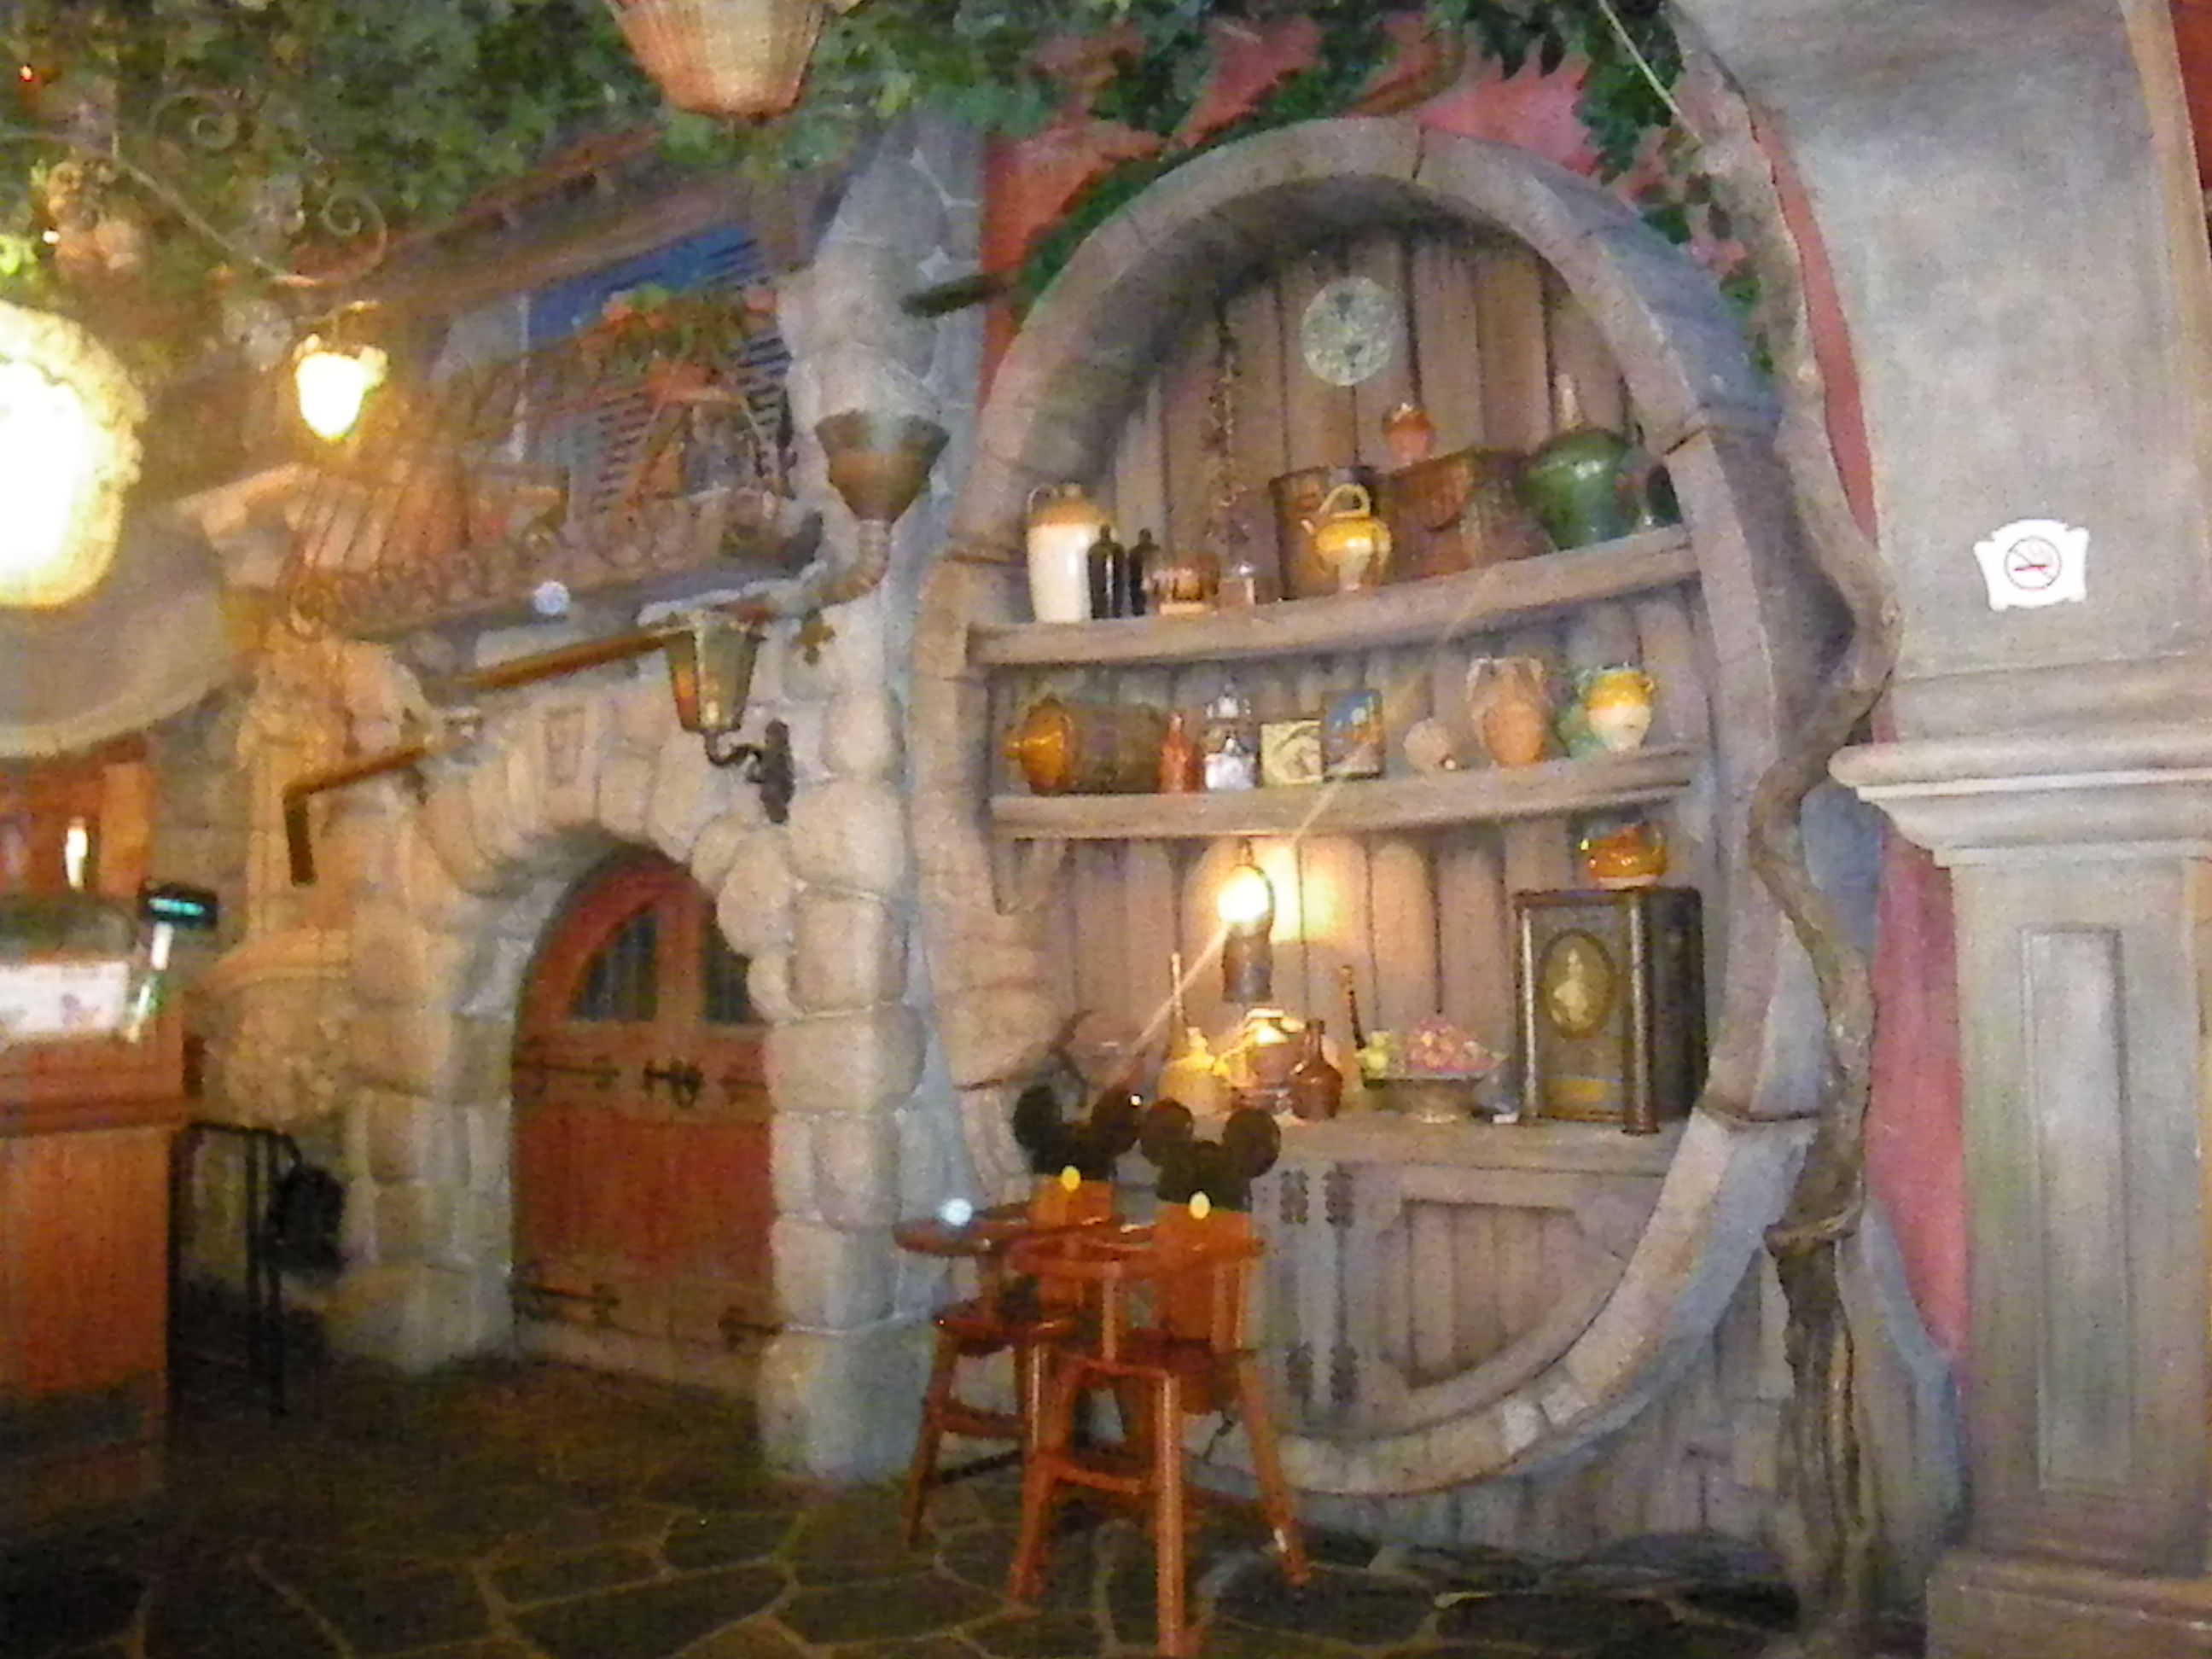 Pizzeria bella notte disneyland paris parce que j 39 adore for Interieur hotel disney